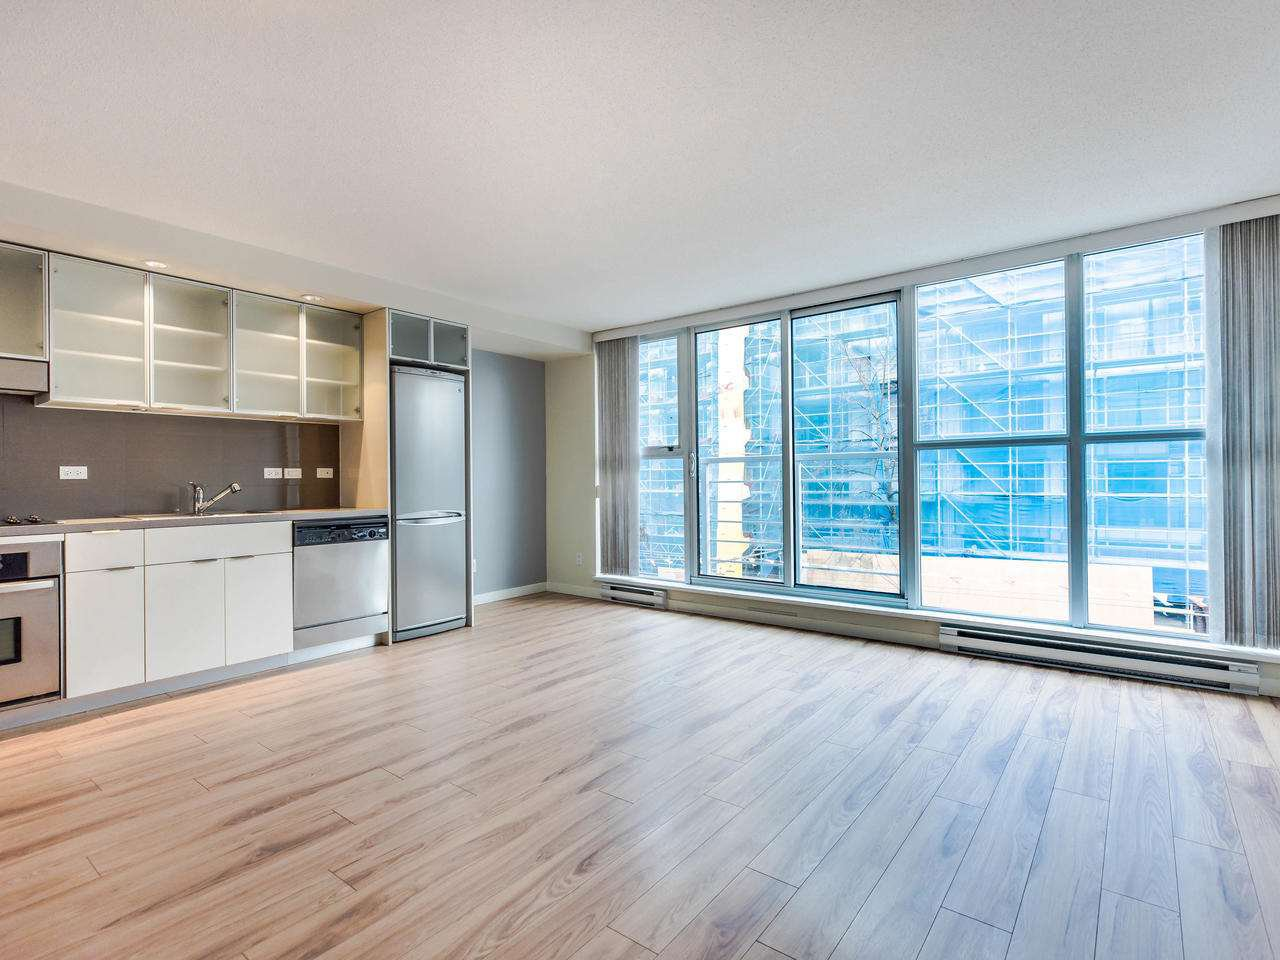 Main Photo: 309 168 POWELL STREET in Vancouver: Downtown VE Condo for sale (Vancouver East)  : MLS®# R2439616